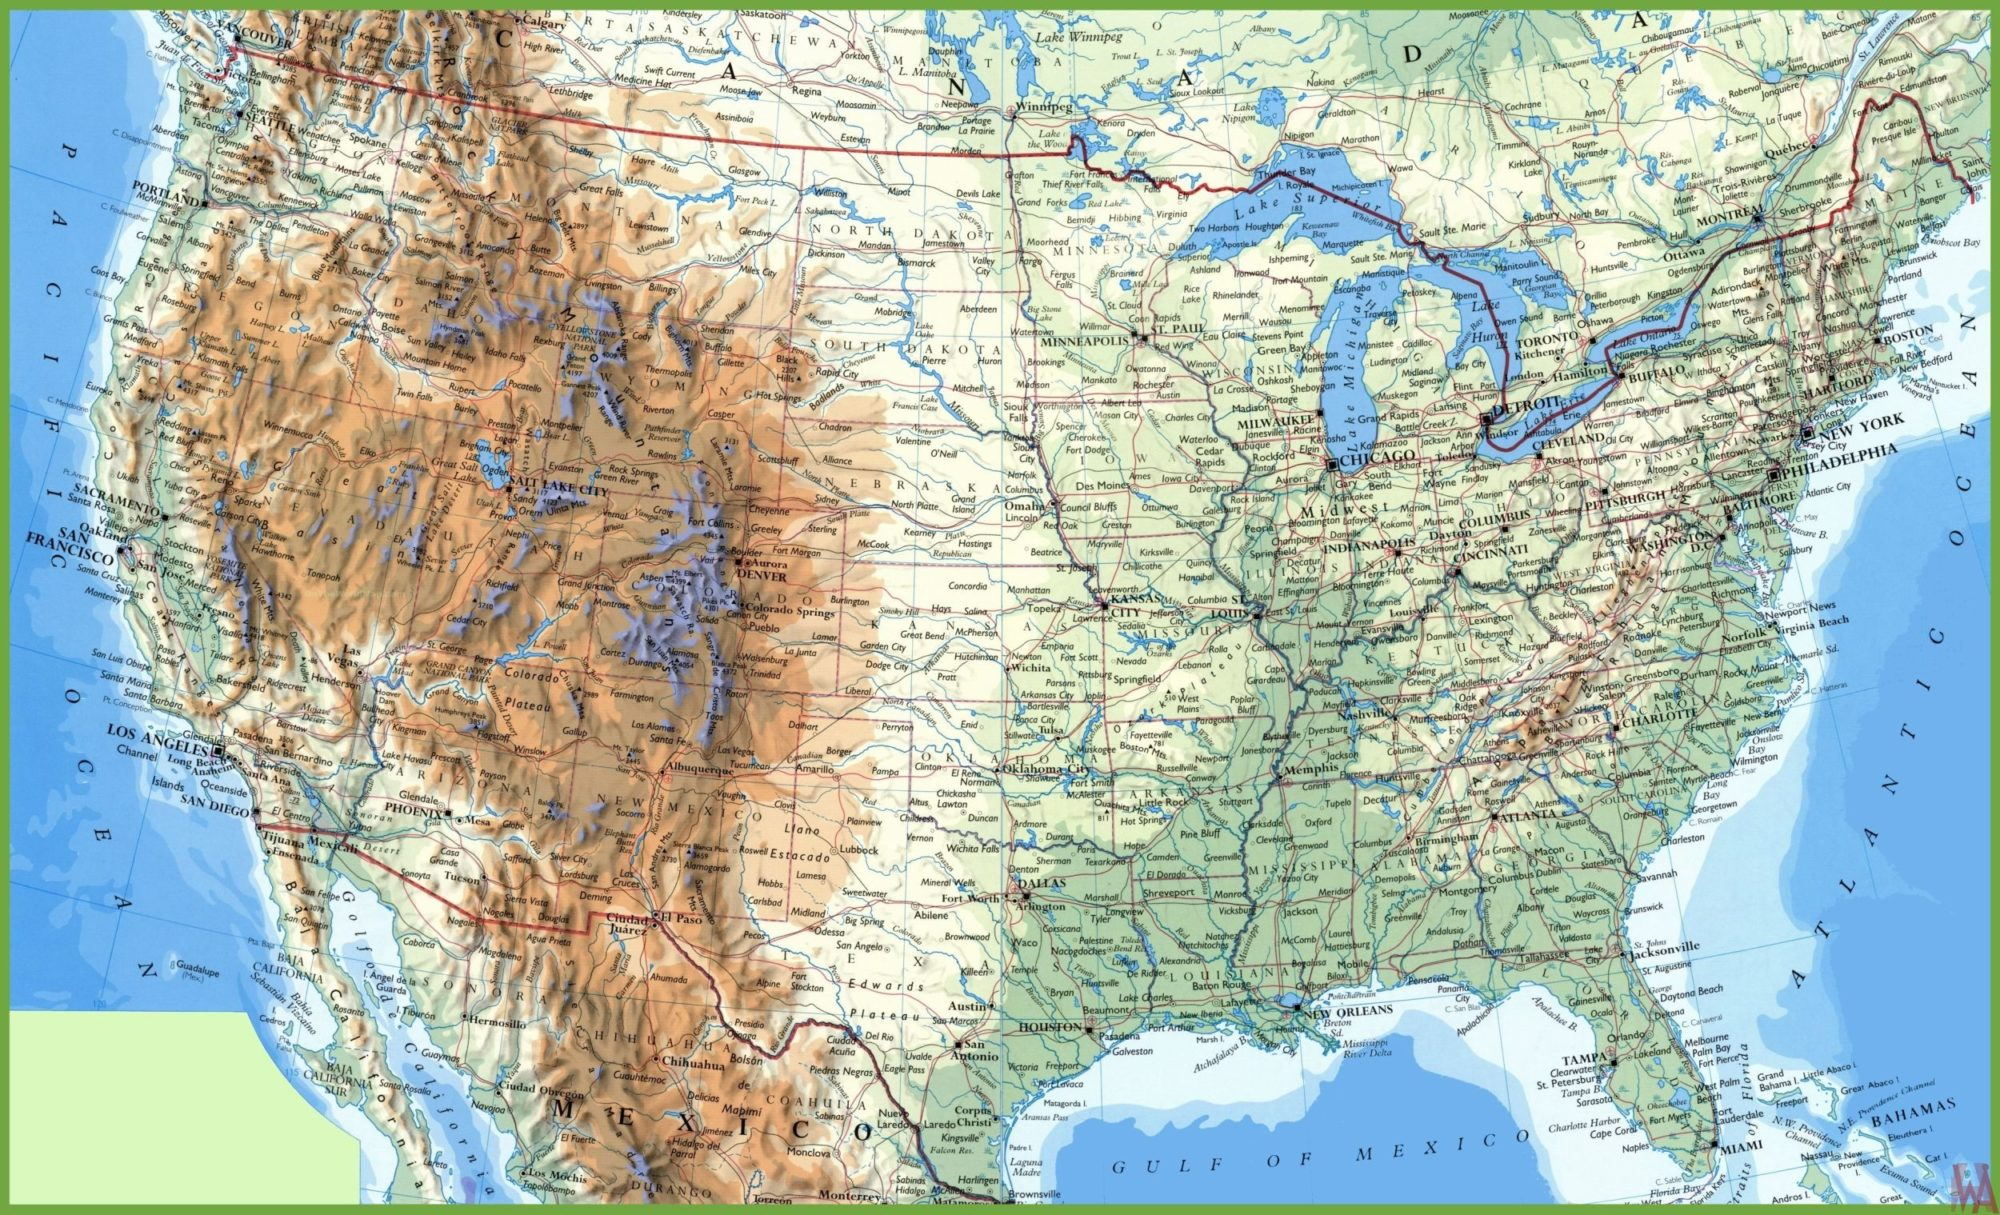 Large Attractive Political, Physical, Geographical Map of USA